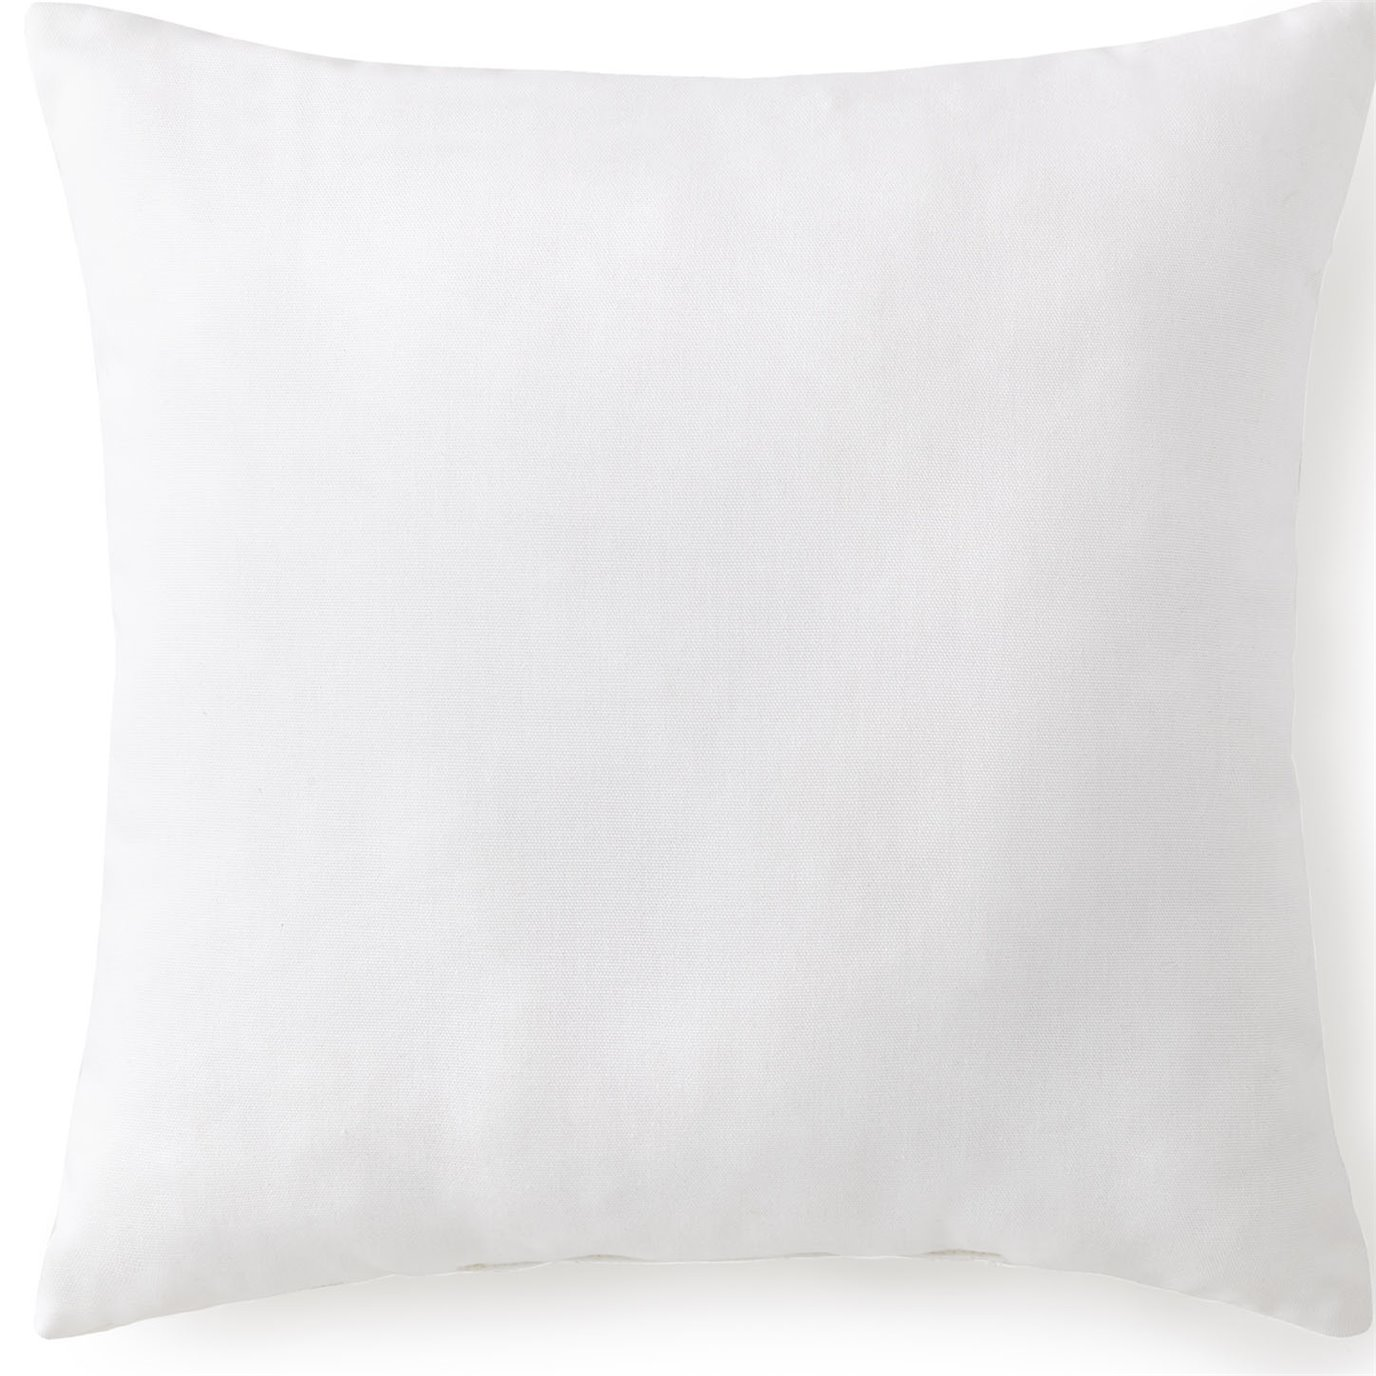 "Tropical Bloom Square Cushion 18""x18"" - Solid White"